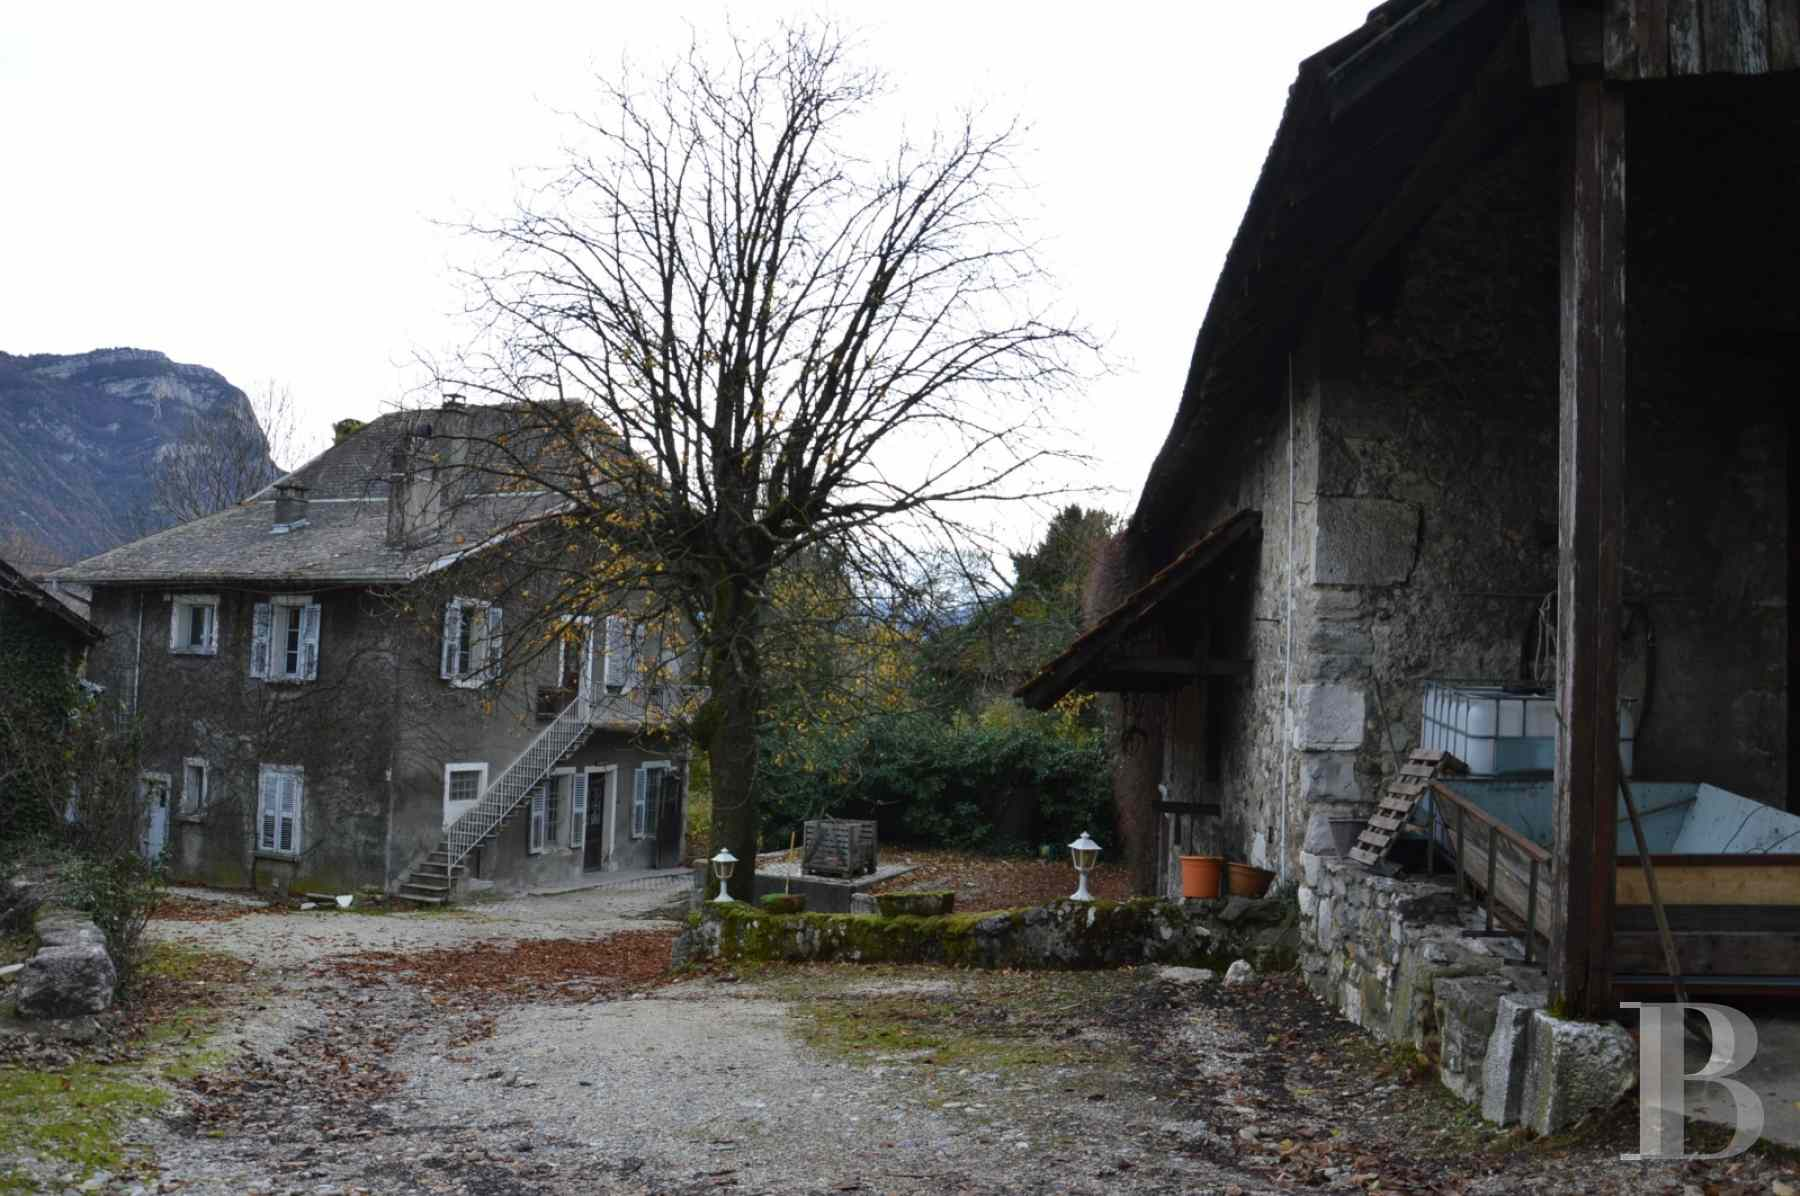 chateaux for sale France rhones alps chambery 18th - 11 zoom